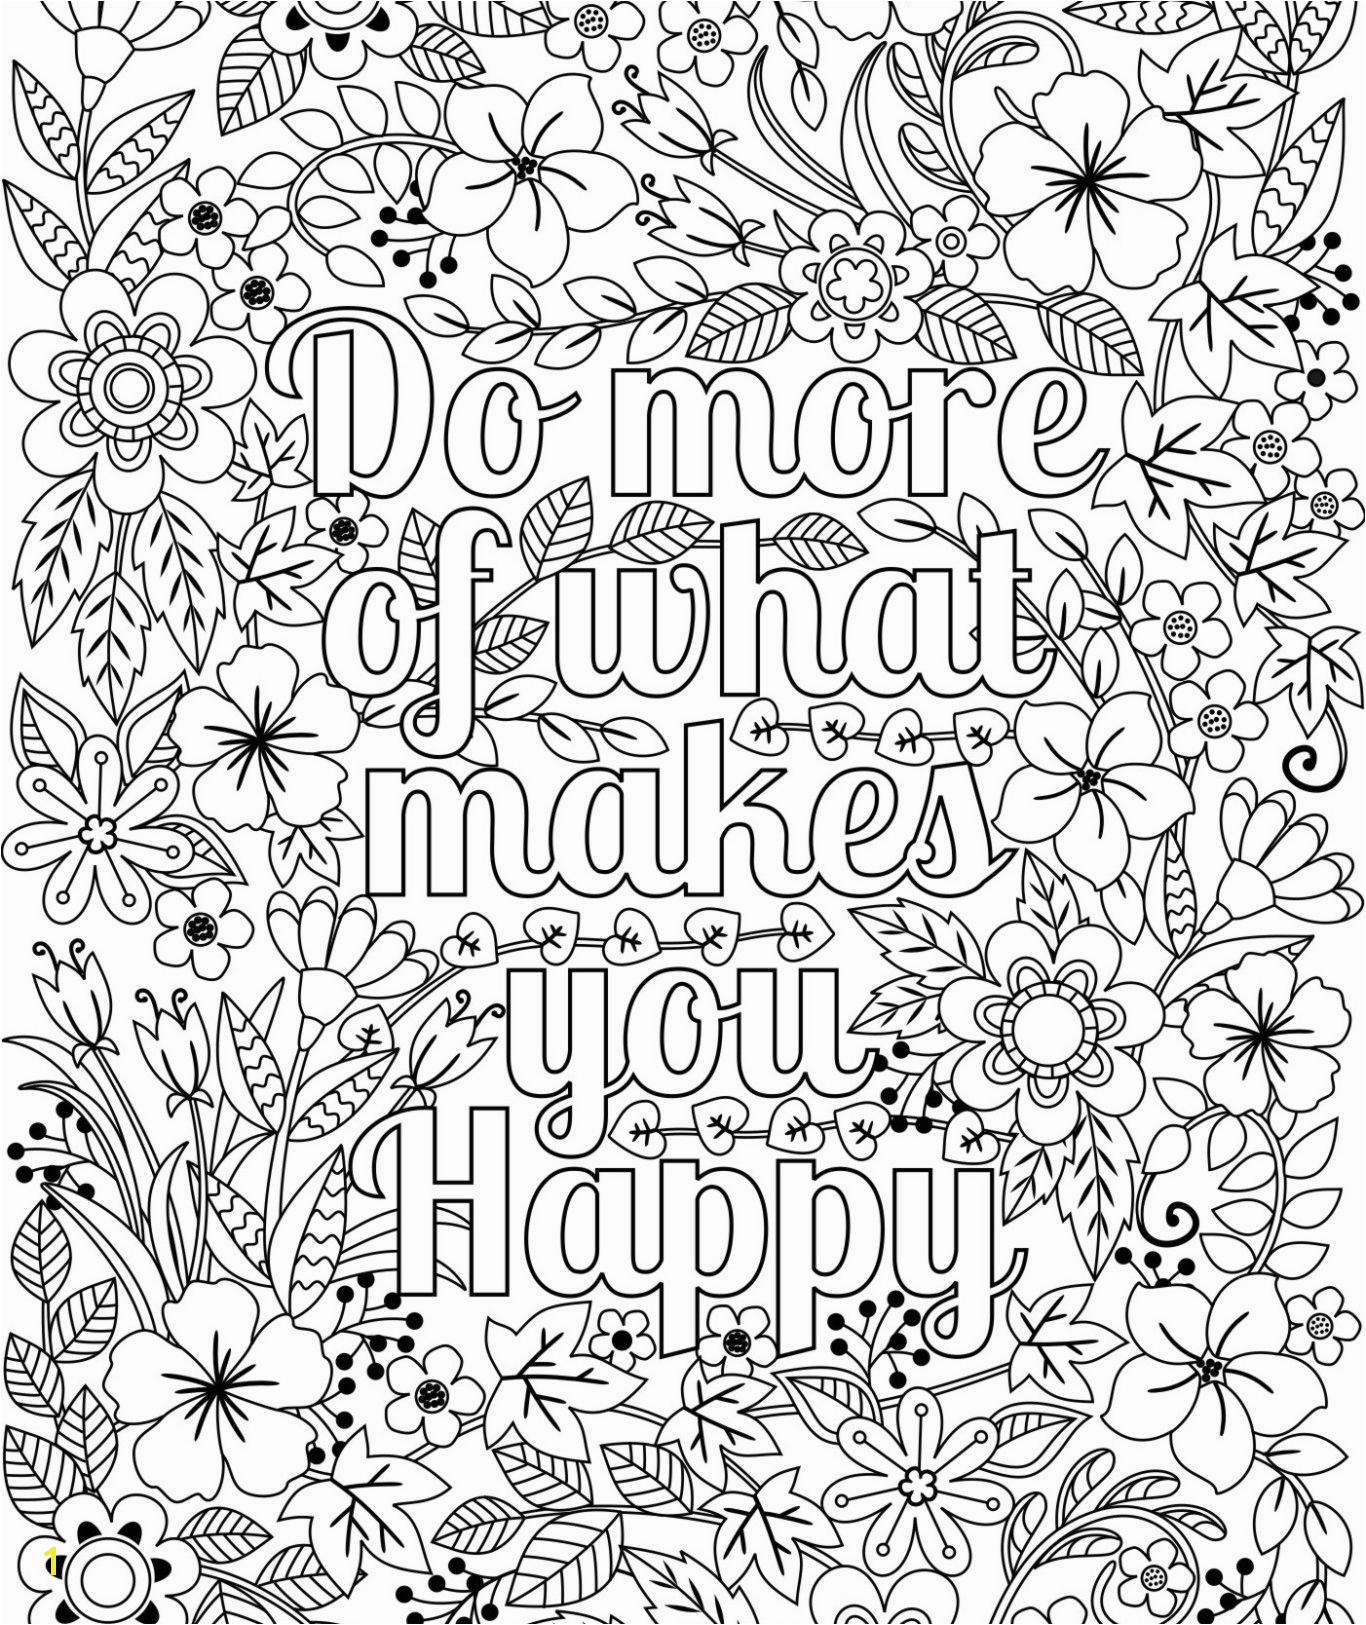 Do more of what makes you happy coloringpage happy Flower Colouring Pages